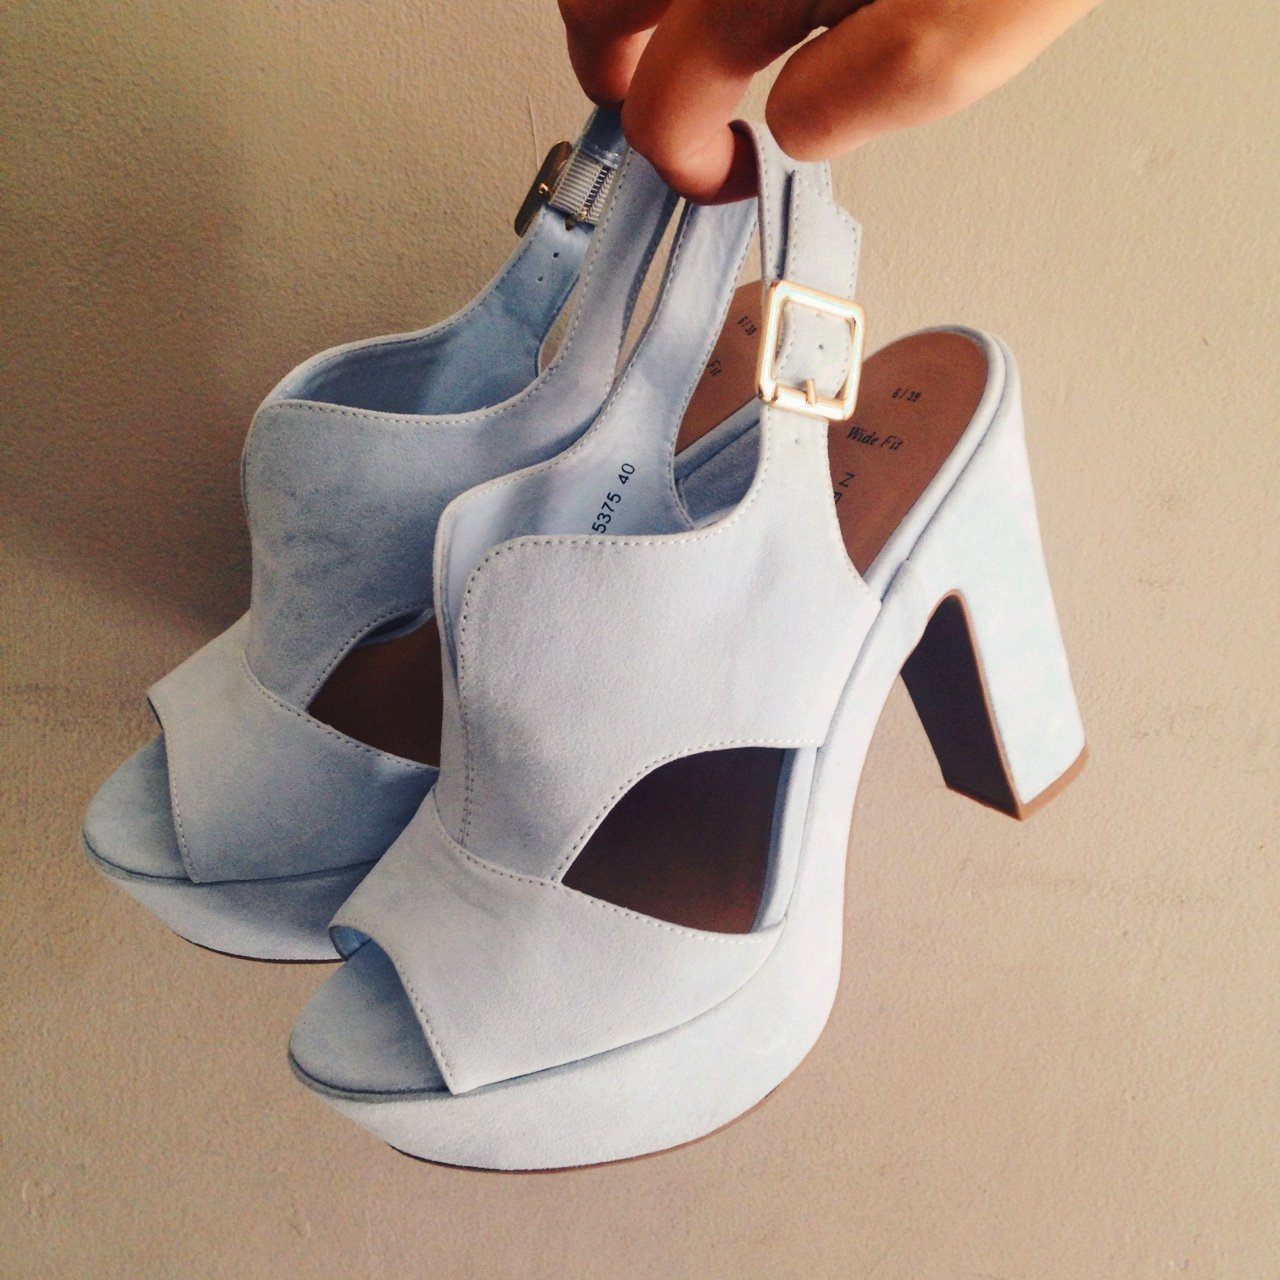 bbe66026015 Light blue New Look Wide Fit Heels. Size 6 39. Only worn in - Depop